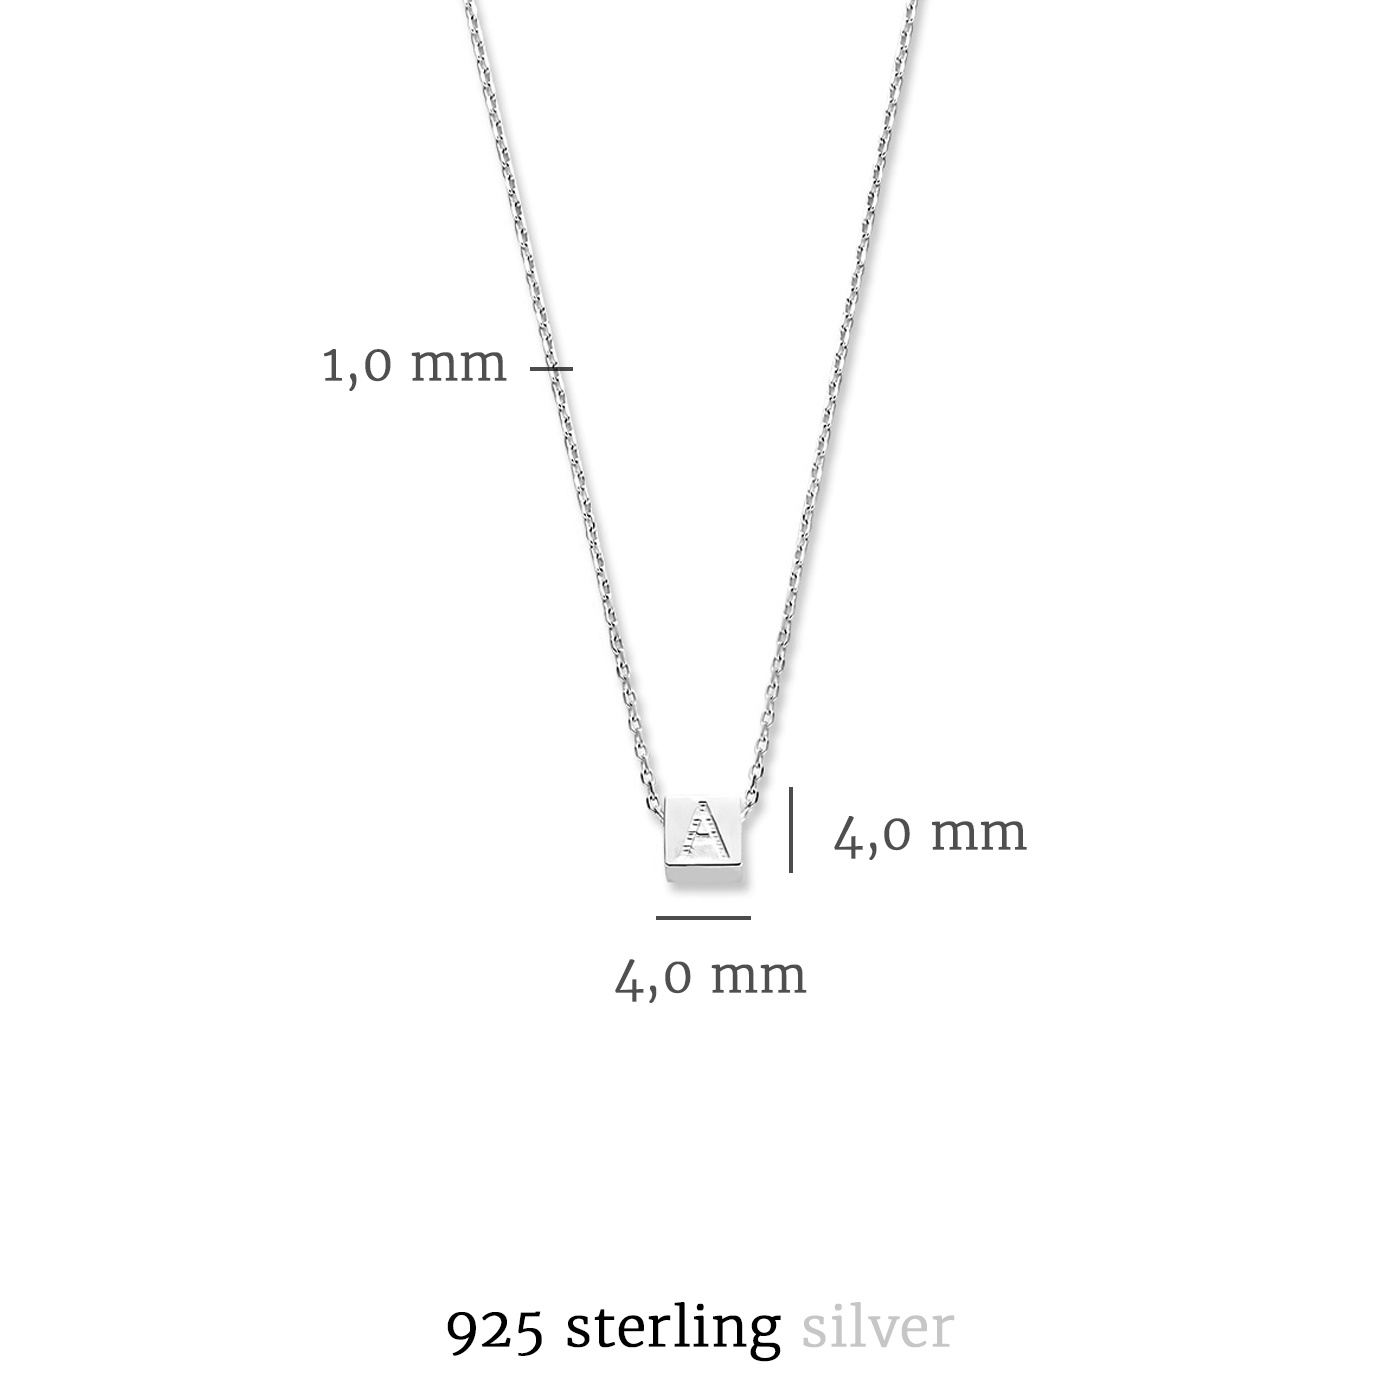 Selected Jewels Julie Chloé 925 sterling silver cube initial necklace with letter